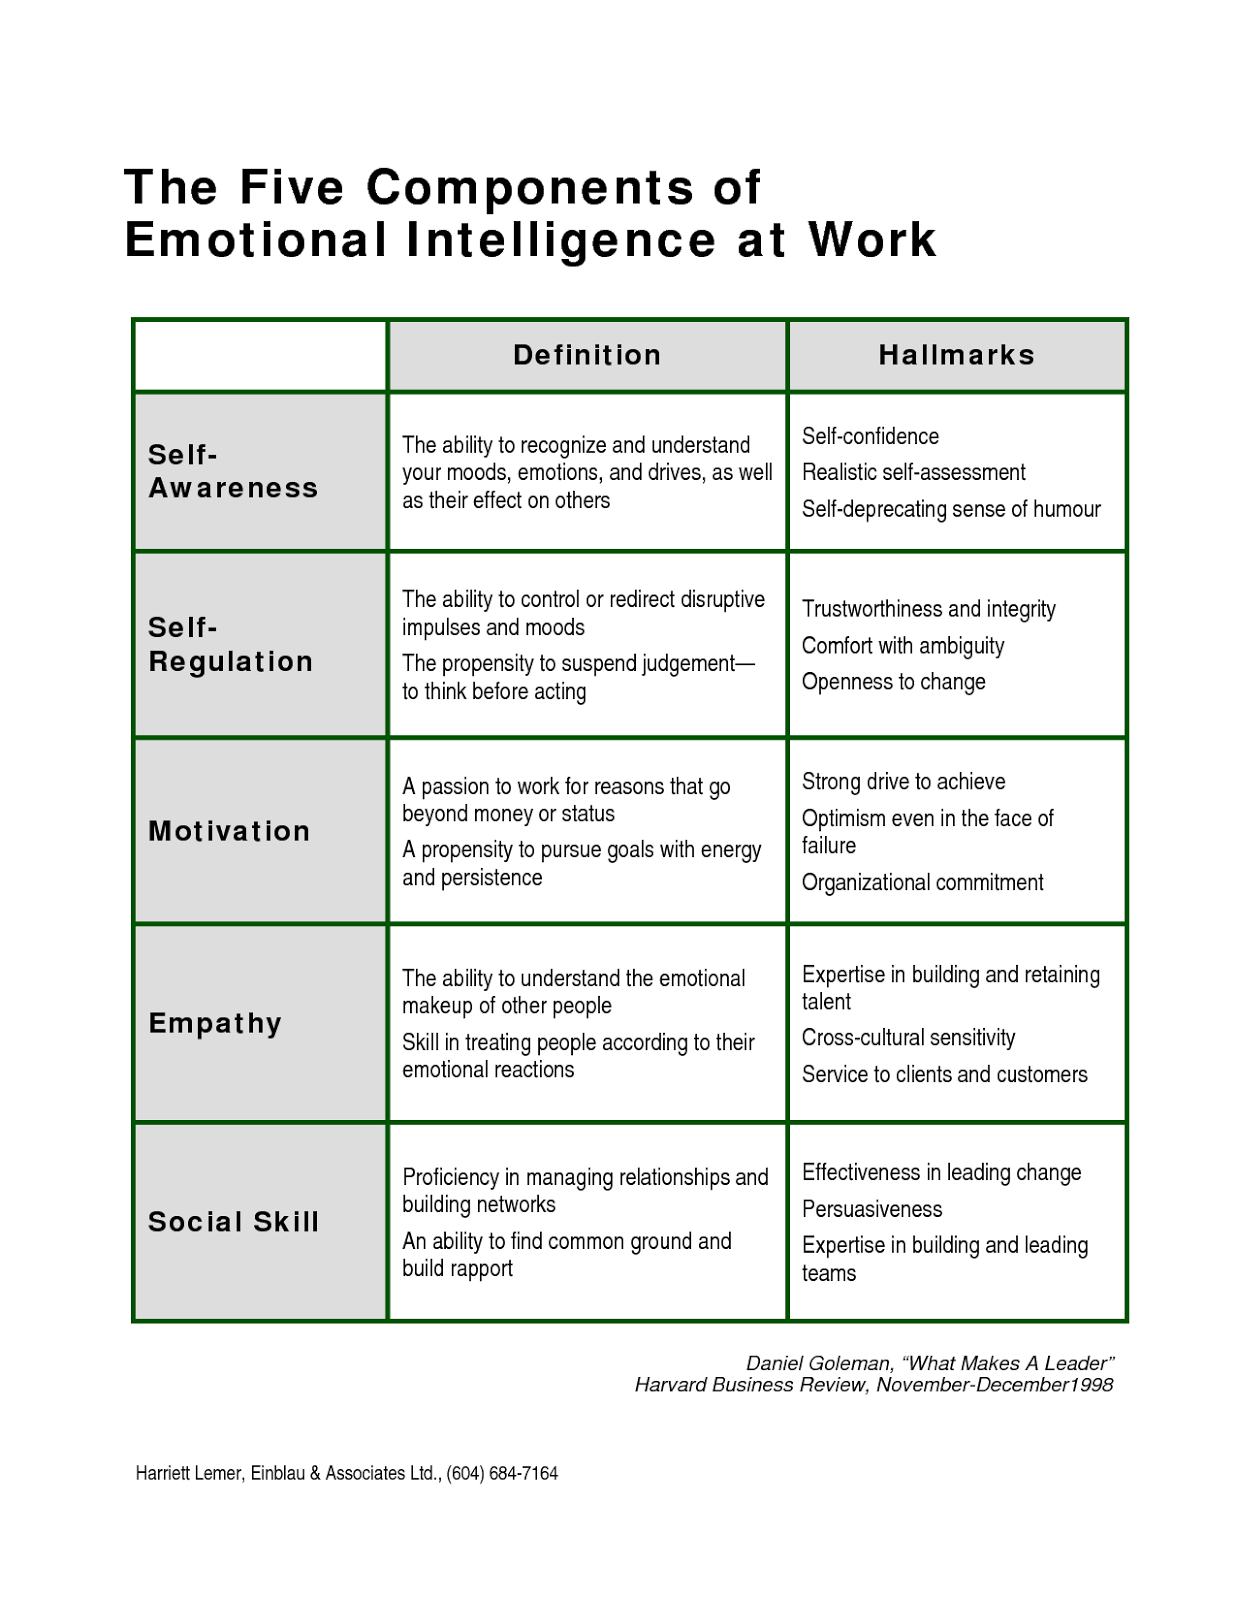 iammoulude emotional intelligence components and emotional iammoulude emotional intelligence components and emotional competence frameworks part 2